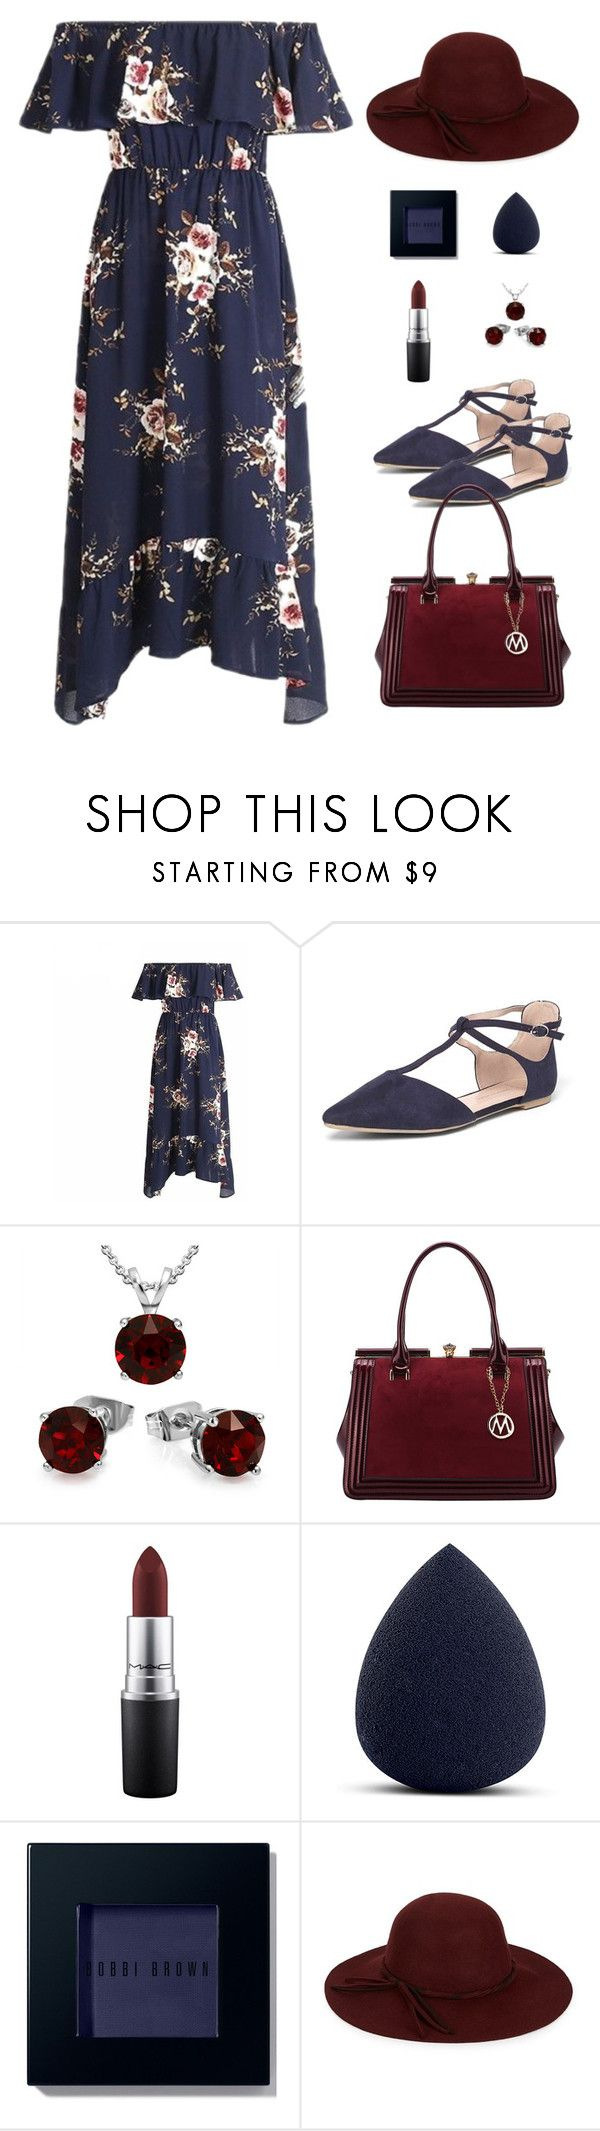 """Under $100: Summer Dresses"" by alara-cary on Polyvore featuring Dorothy Perkins, MKF Collection, MAC Cosmetics, Bobbi Brown Cosmetics, COLLECTION 18 and under100"